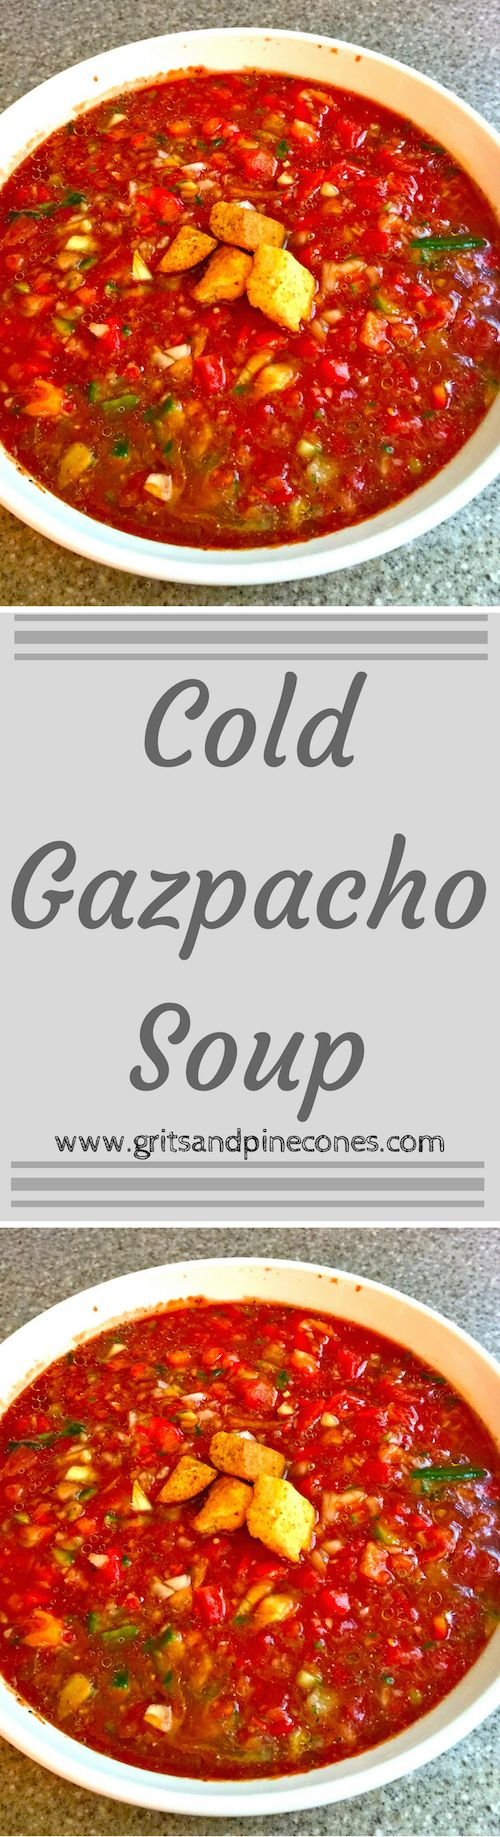 This Gazpacho recipe is quick and easy, and you can have a nutritious meal on… (Low Carb Easy Crockpot)